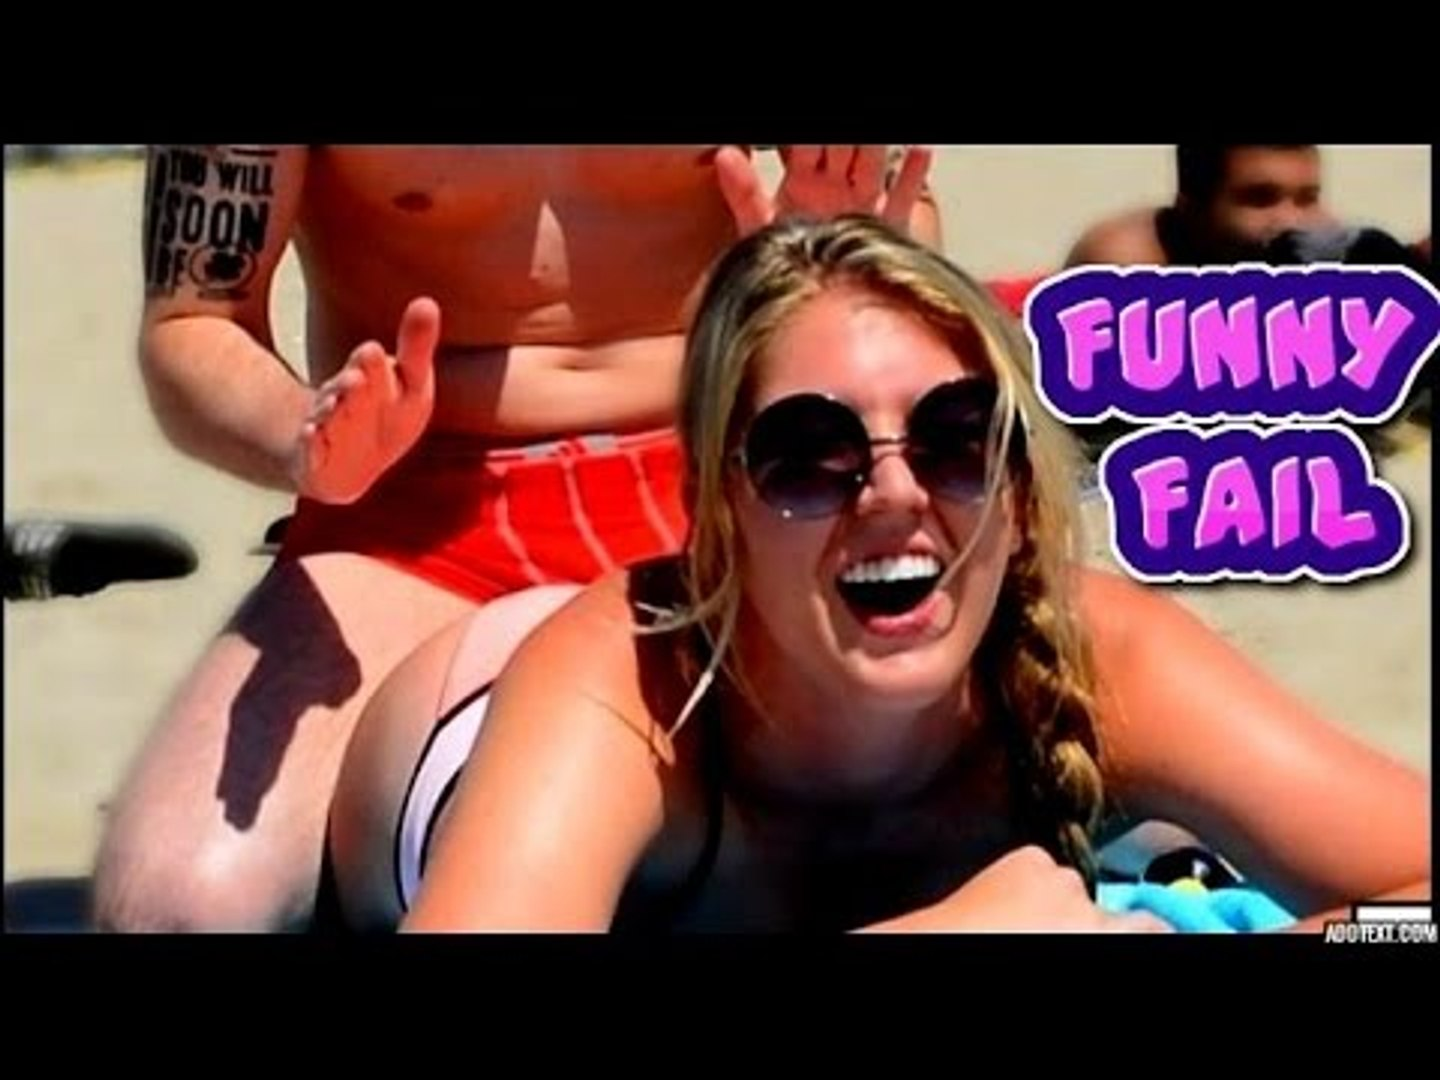 Funny Videos ★ Best Funny Fail Compilation ★ Hot Girls Fails ★ Try Not To Laugh Top Funny Fails ★ Ho